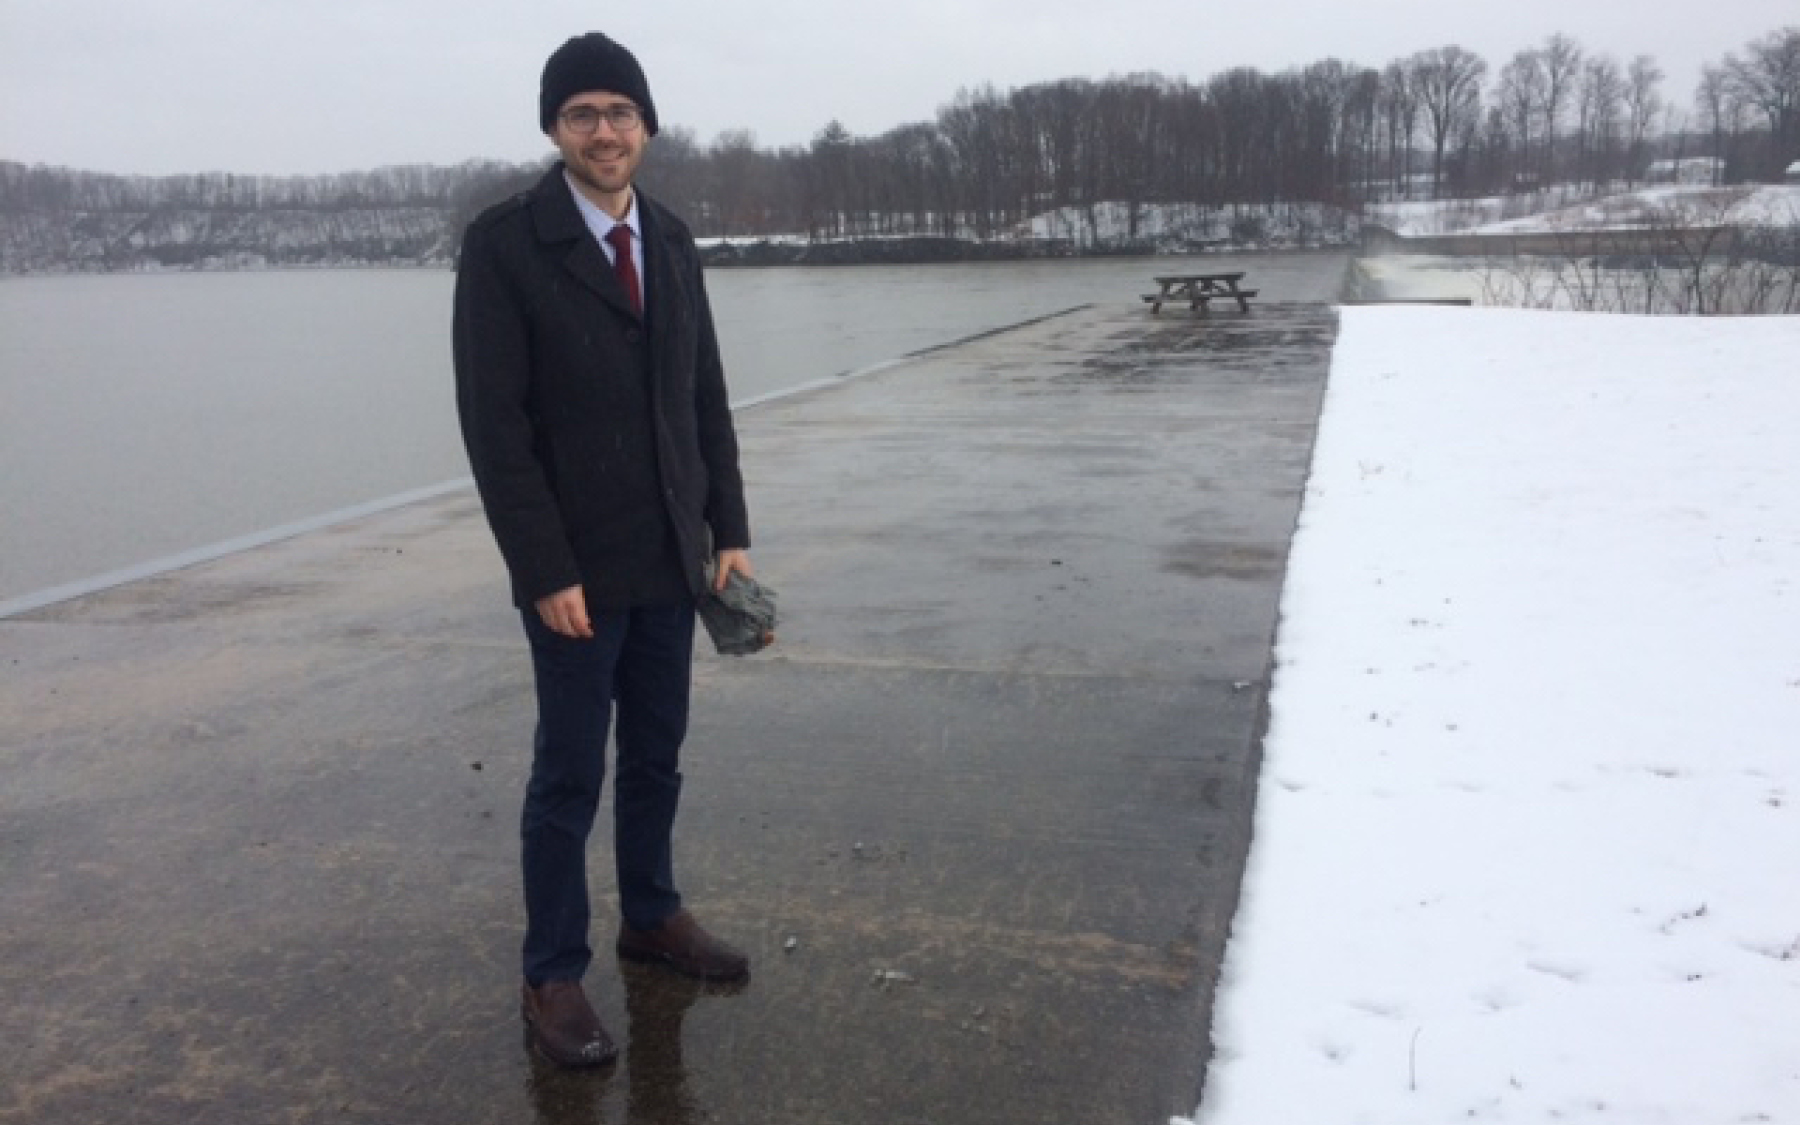 Jacob Kvasnicka stands on the shore of the Hudson River in winter.